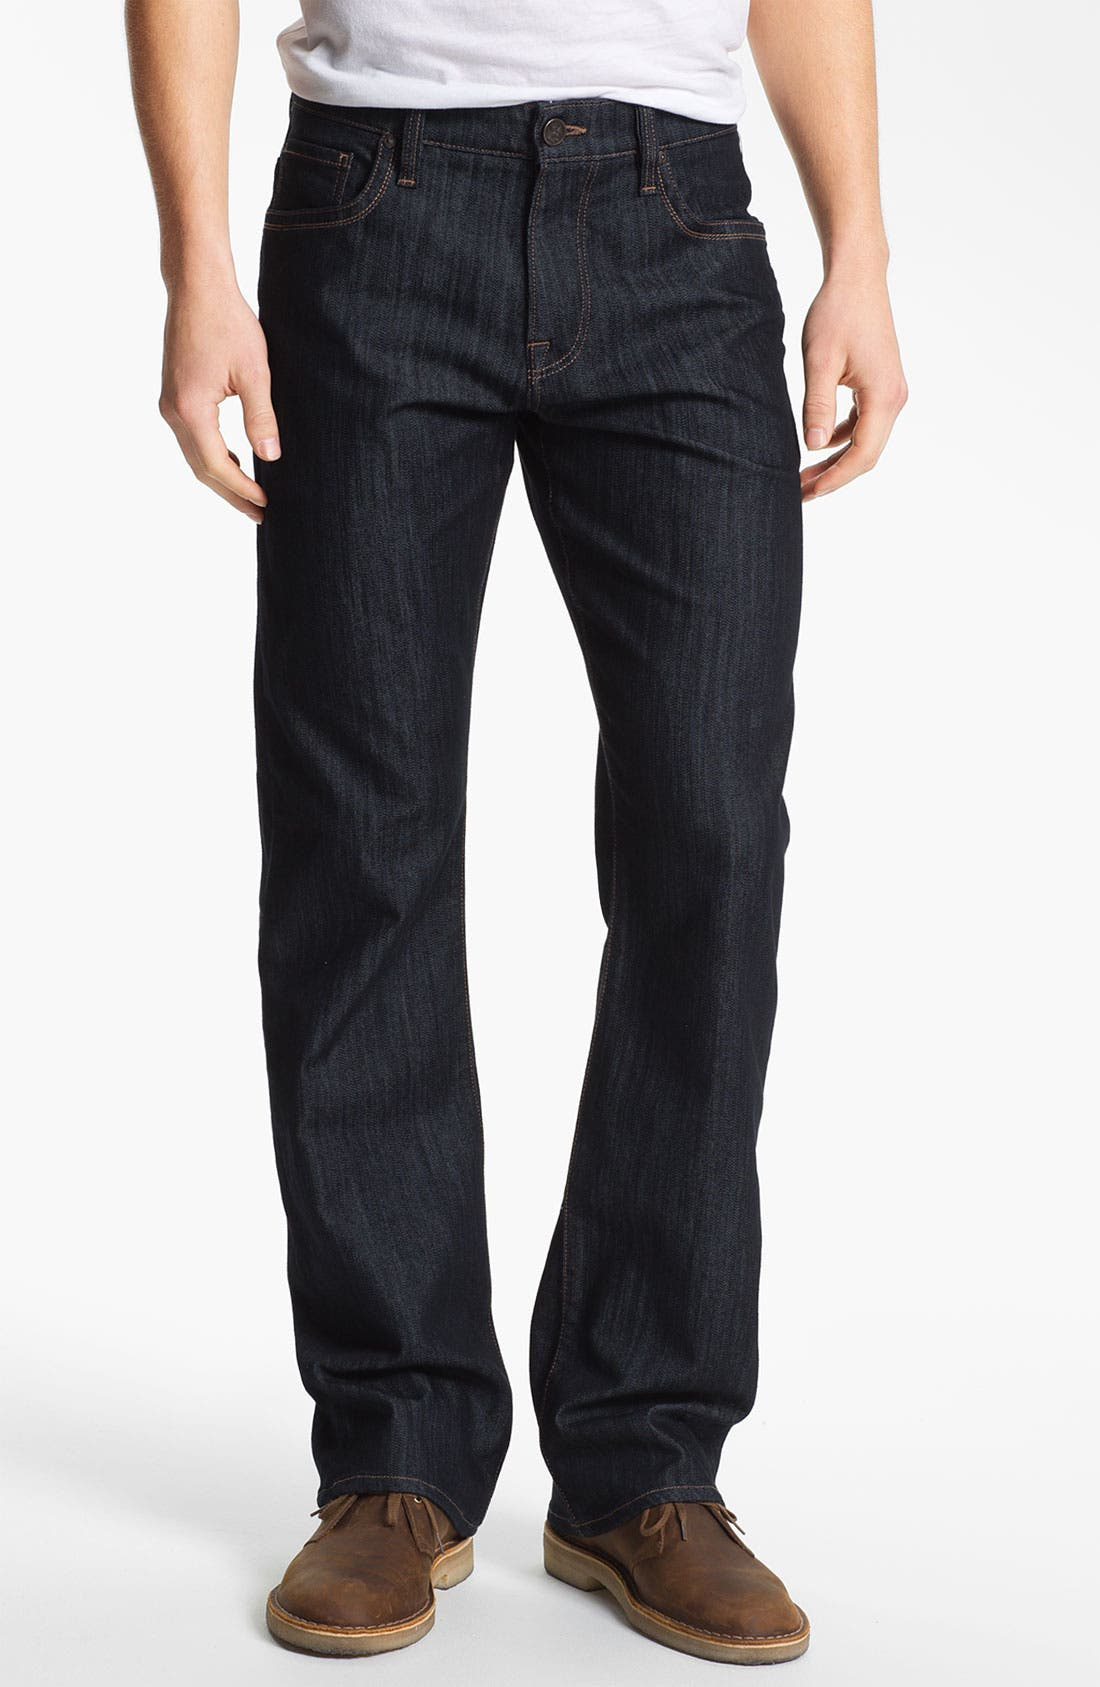 Alternate Image 1 Selected - 34 Heritage 'Confidence' Relaxed Leg Jeans (Rinse Mercerized) (Online Only)